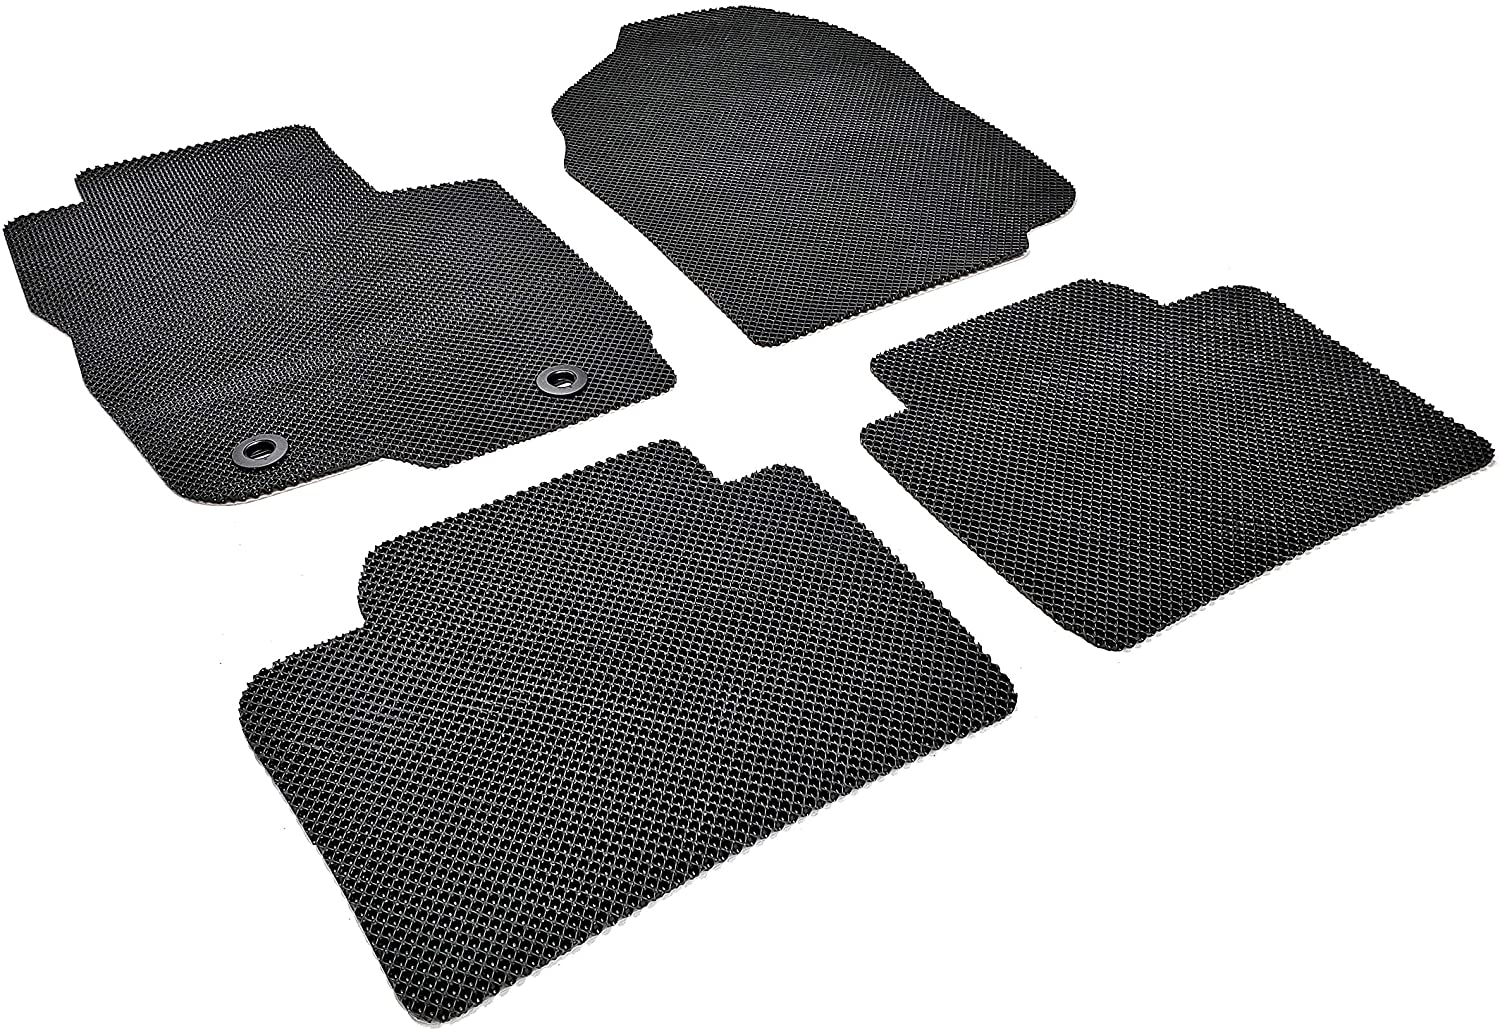 Autotech Park Custom Fit Car Floor Mat Compatible with 2013-2017 Subaru XV Crosstrek Wagon, All Weather Heavy Duty Floor Mat Set